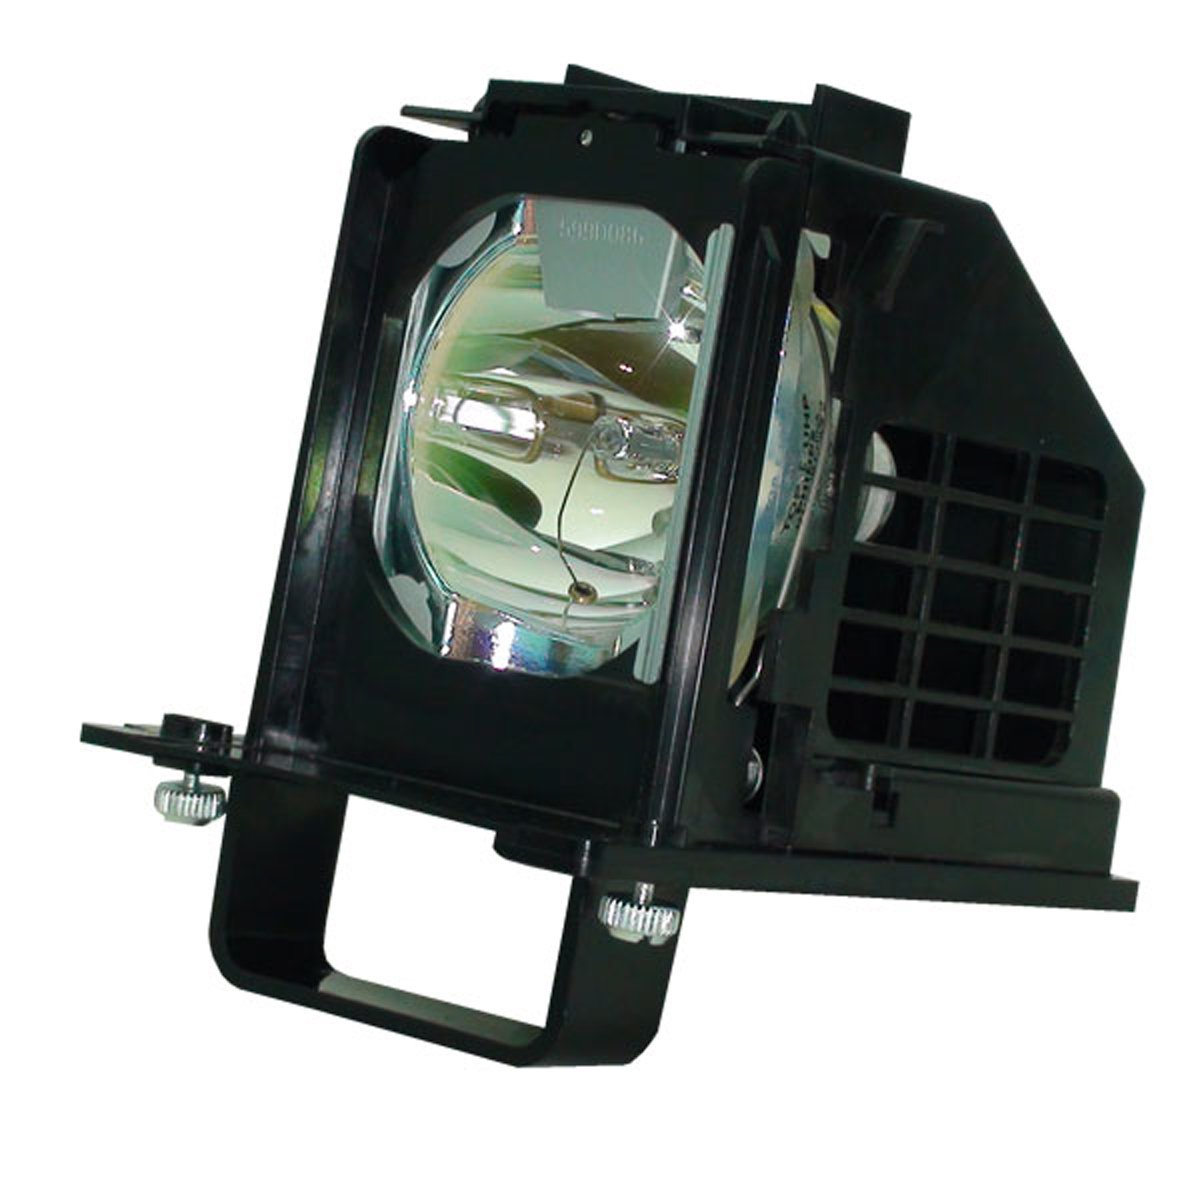 Lytio Economy Rear Projection TV Lamp with Housing, for Mitsubishi 915B441001 / 915B441A01 / 915P106010 / 915P106A10. by LYTIO